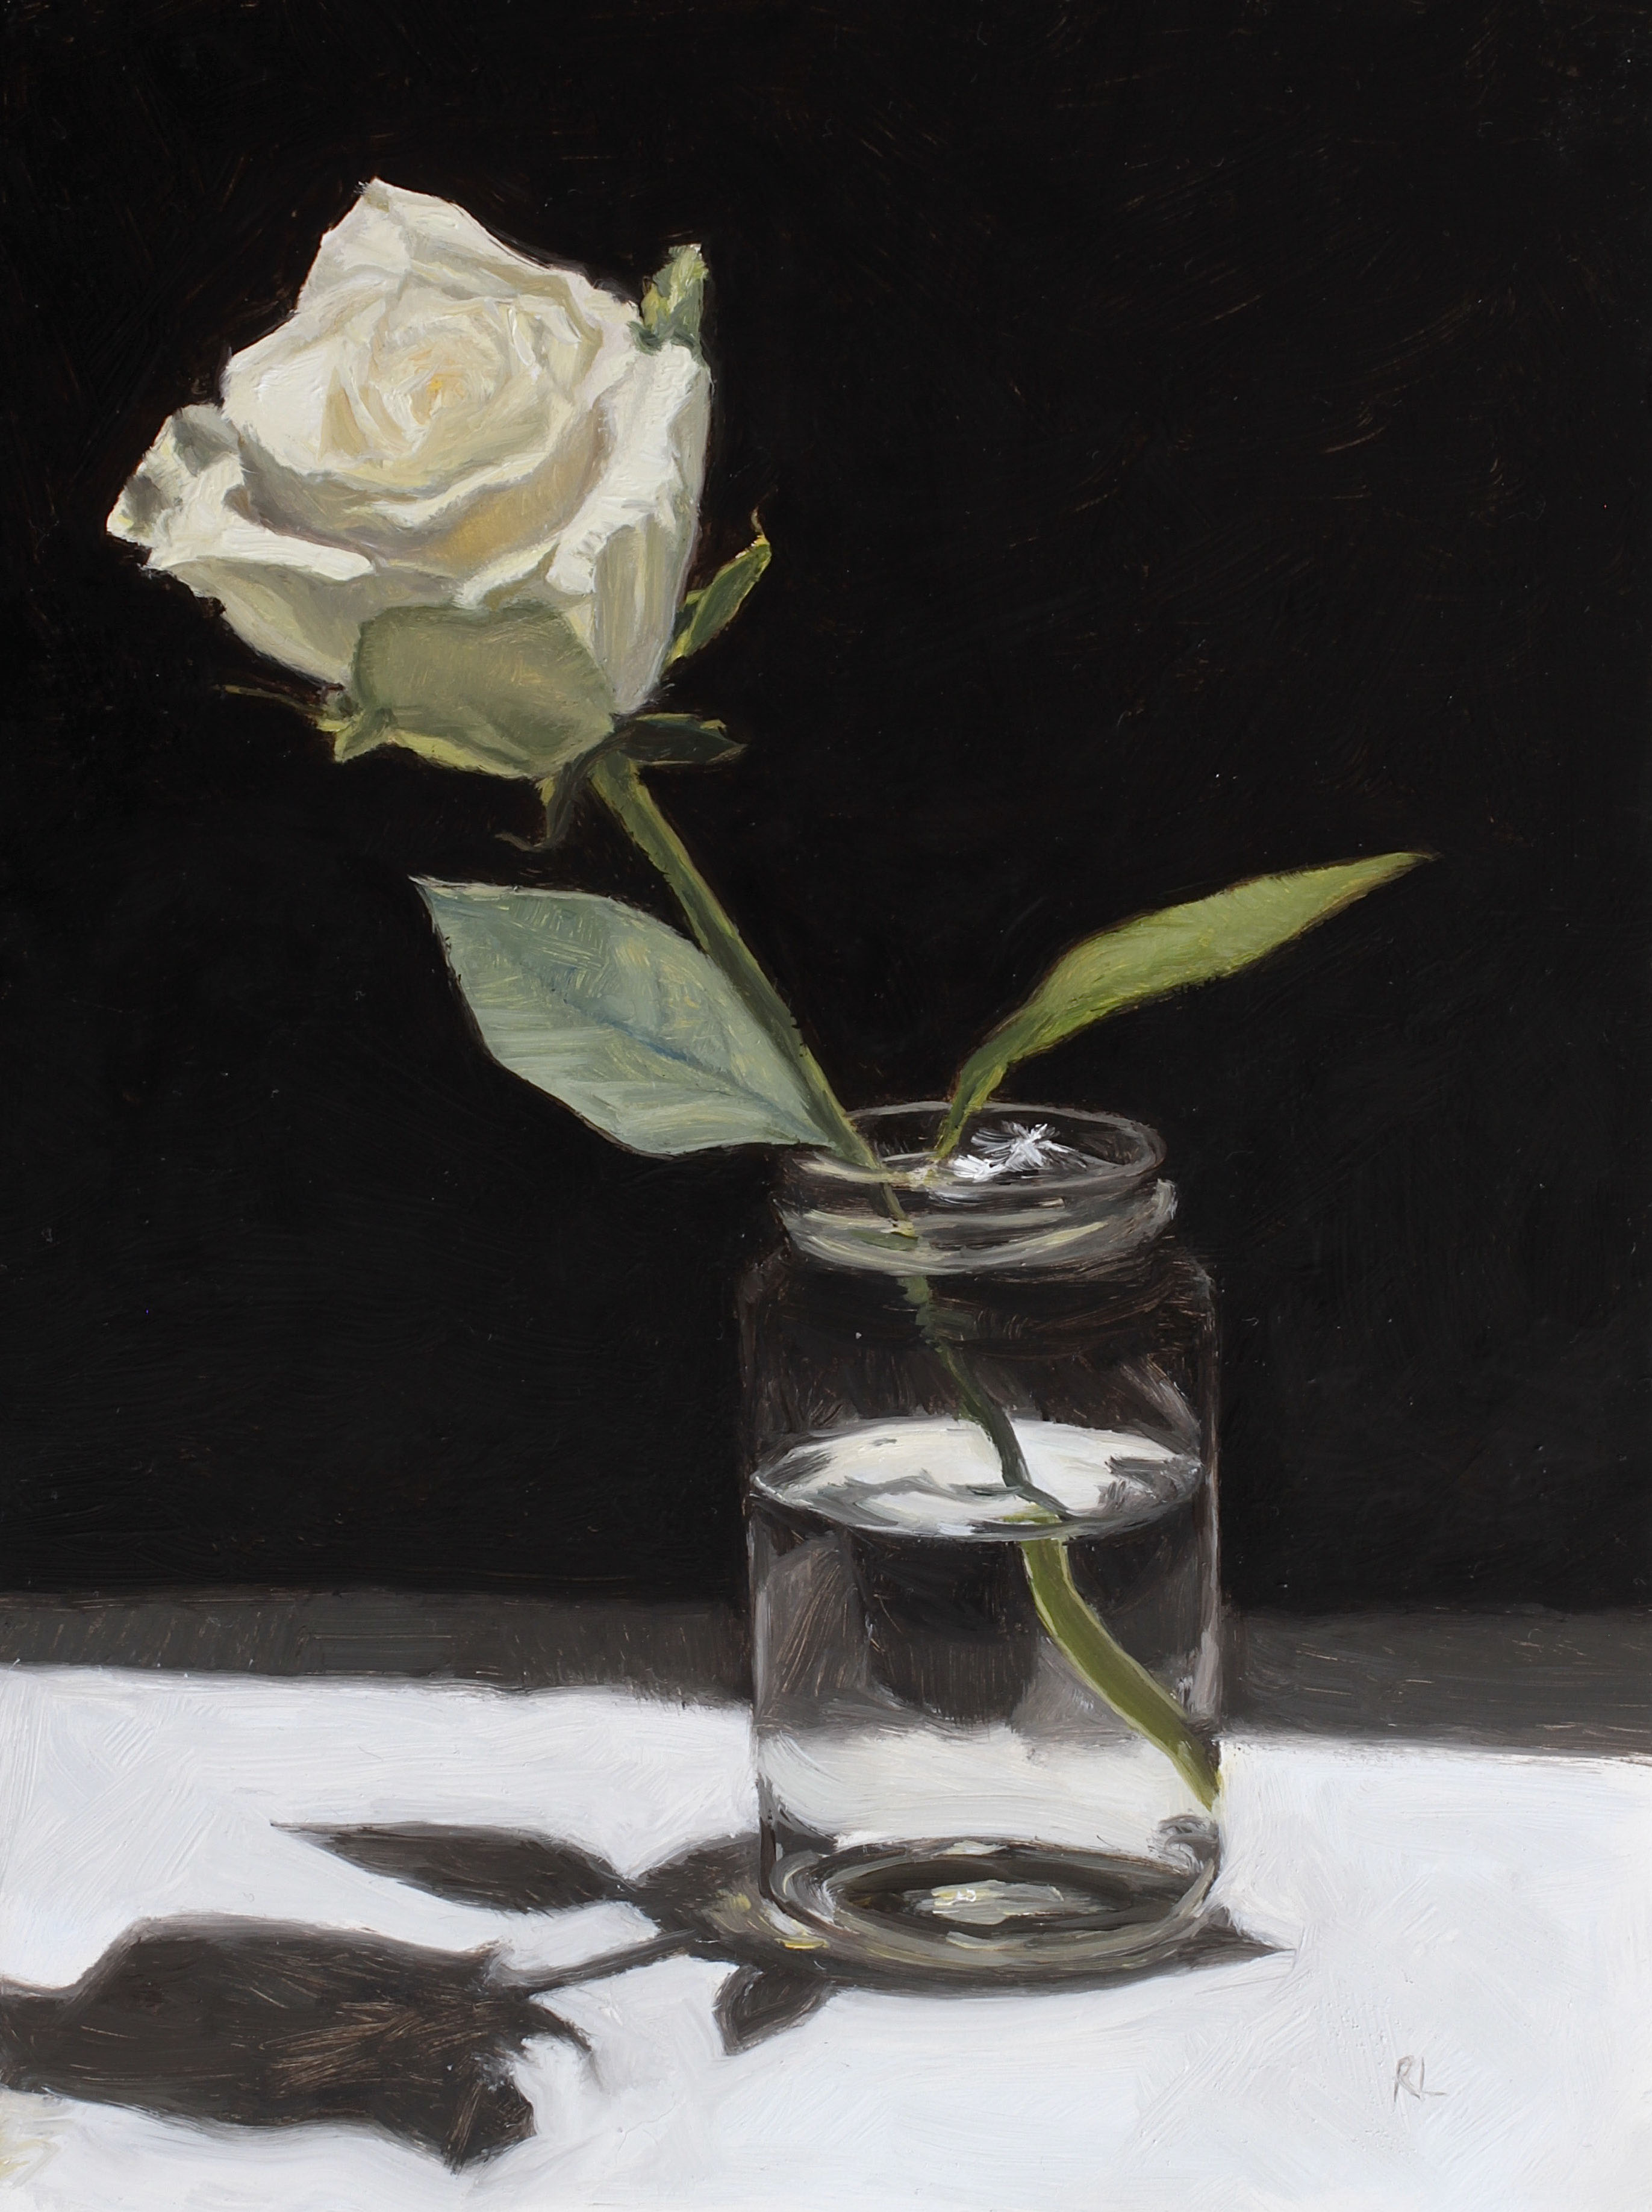 White Rose in a Glass Jar